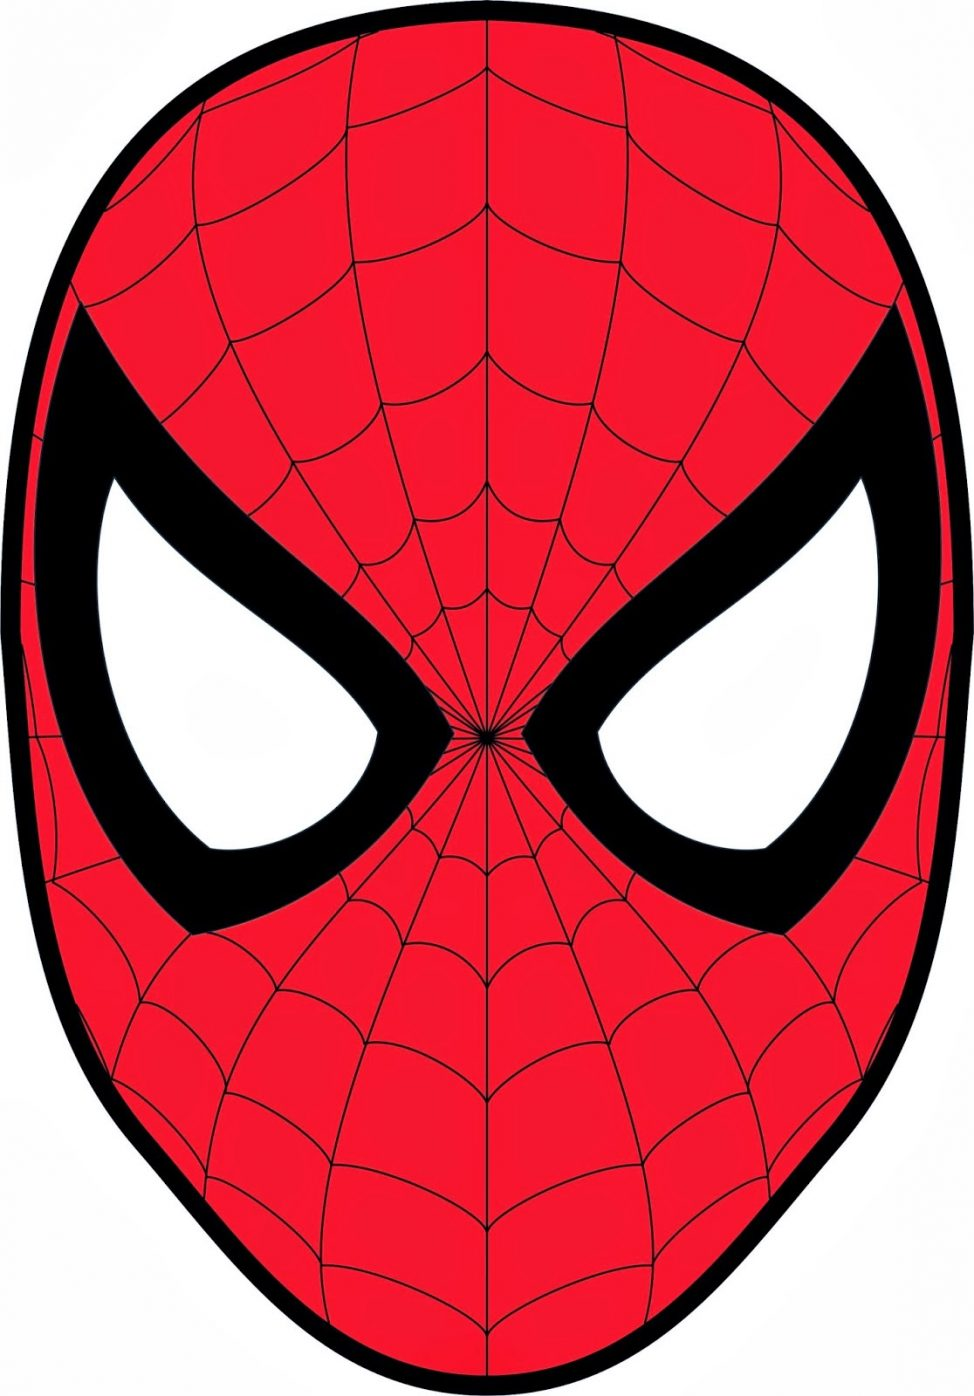 974x1396 Coloring Pages Spiderman Cartoon Face Coloring Pages Spiderman